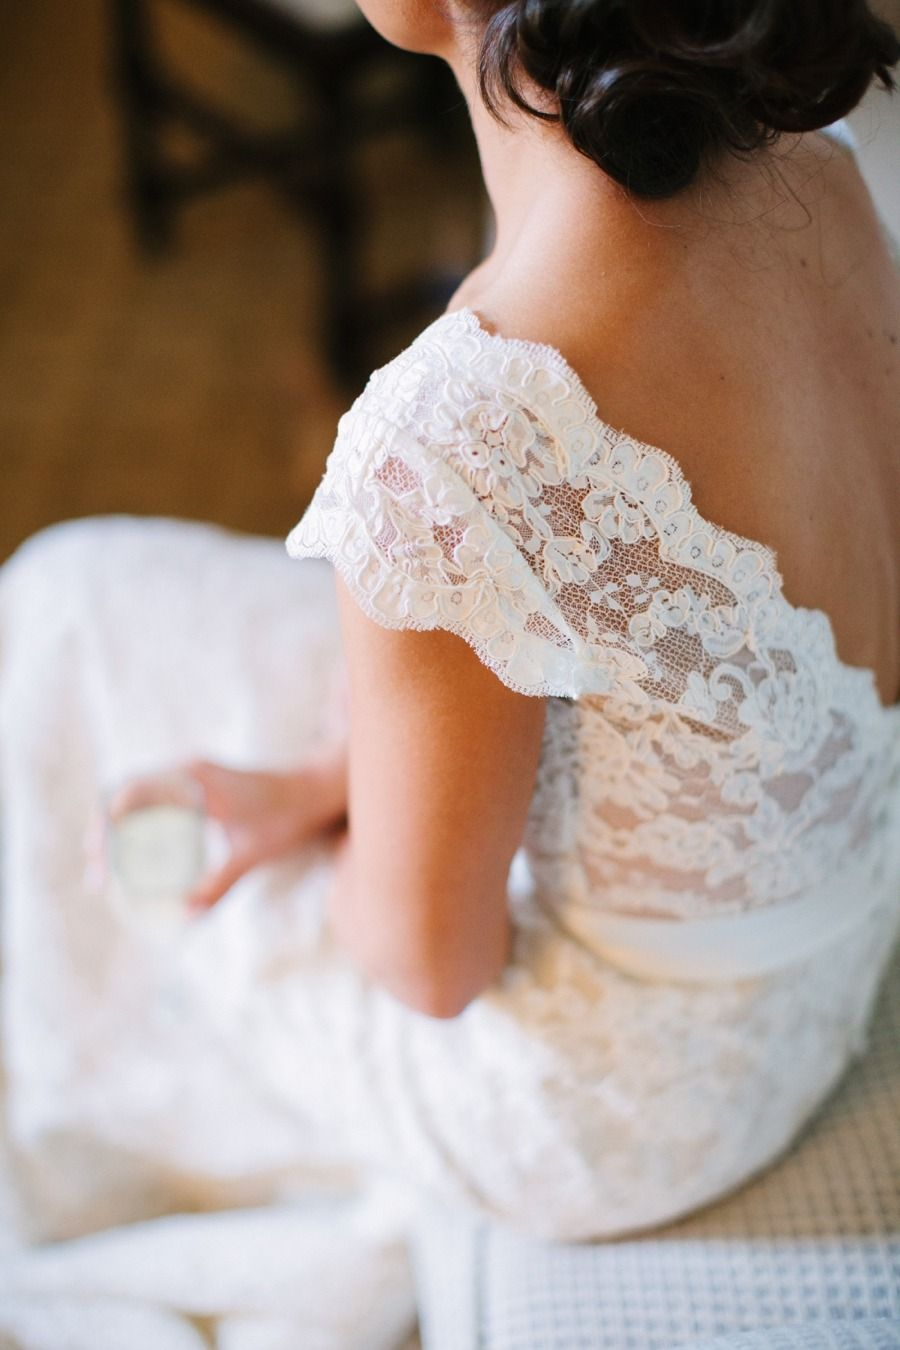 Lian Carlo lace wedding #dress | Photography: Anna Routh Photography - annarouthphoto.com  Read More: http://www.stylemepretty.com/2014/07/14/spring-barn-wedding-in-chapel-hill/